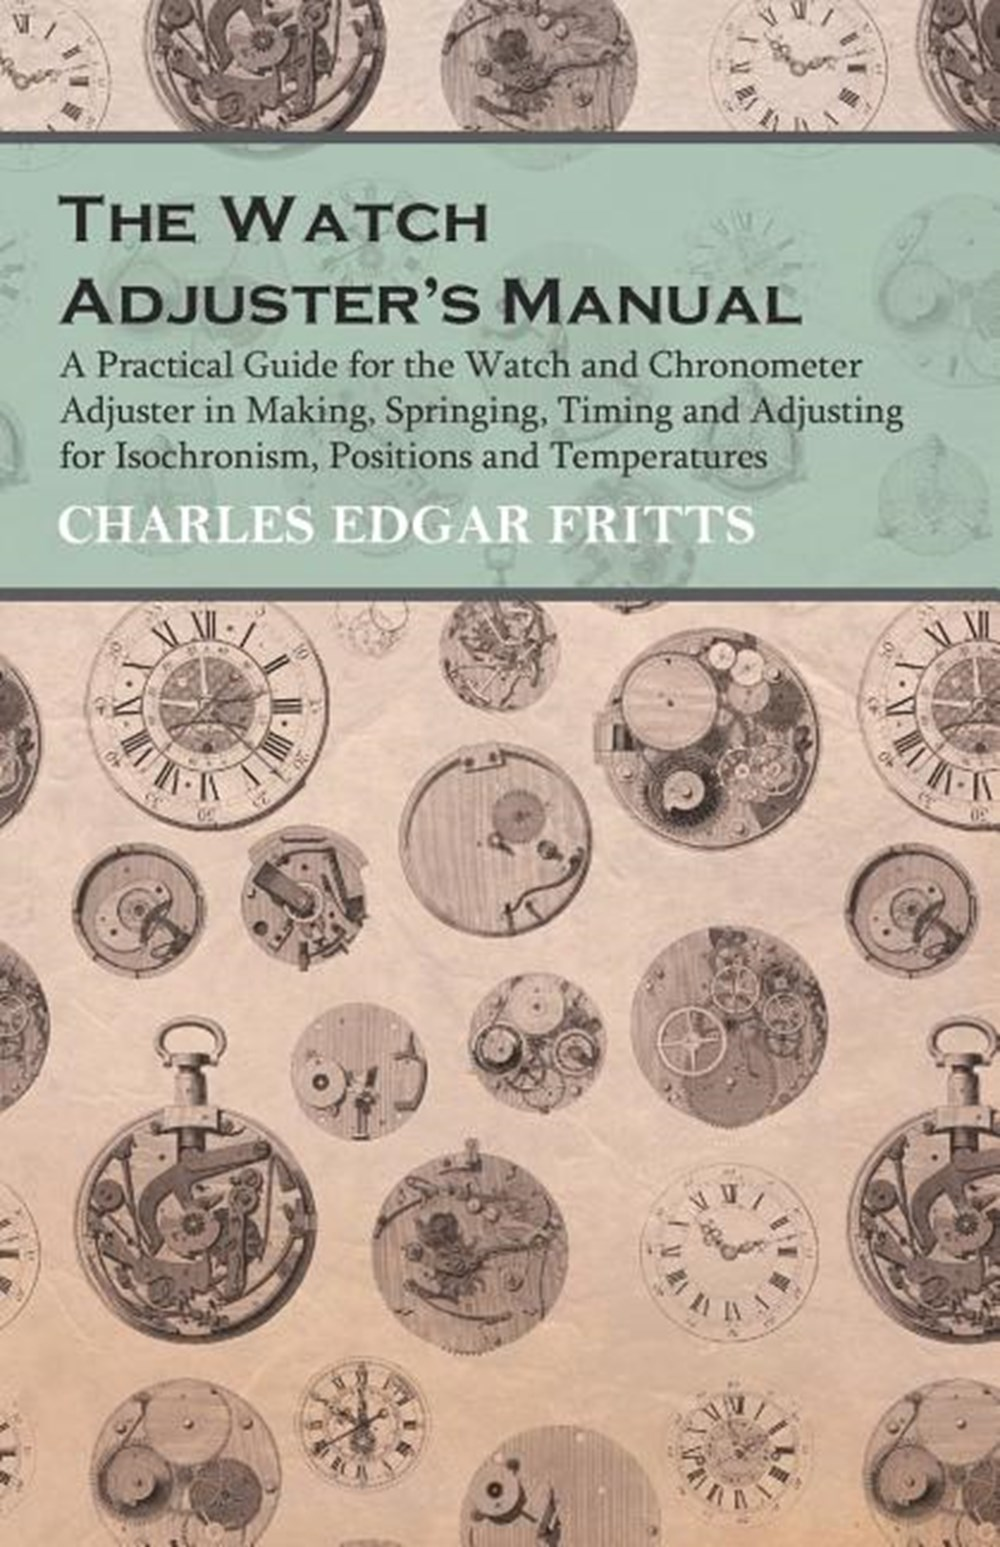 Watch Adjuster's Manual - A Practical Guide for the Watch and Chronometer Adjuster in Making, Spring